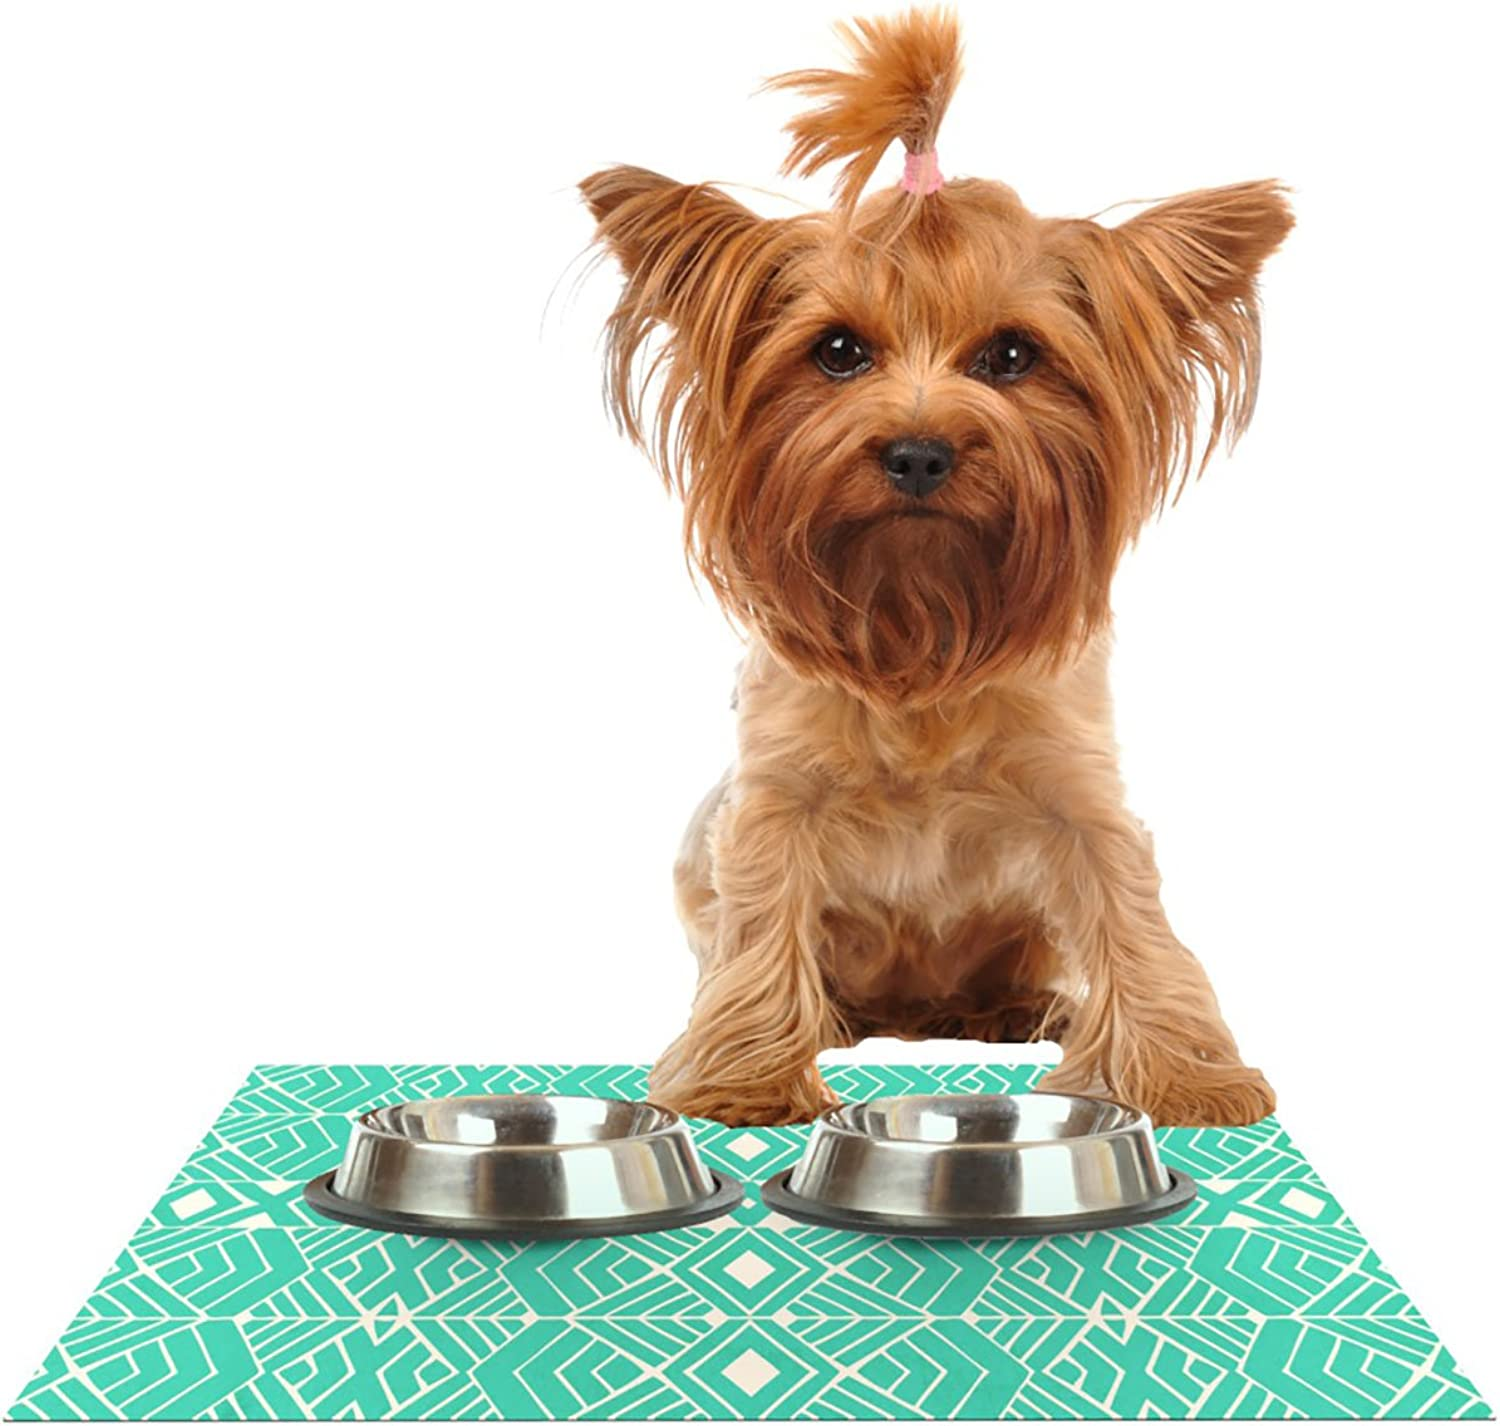 Kess InHouse Pom Graphic Design Going Native  Pet Bowl Placemat for Dog and Cat Feeding Mat, 24 by 15Inch, Teal